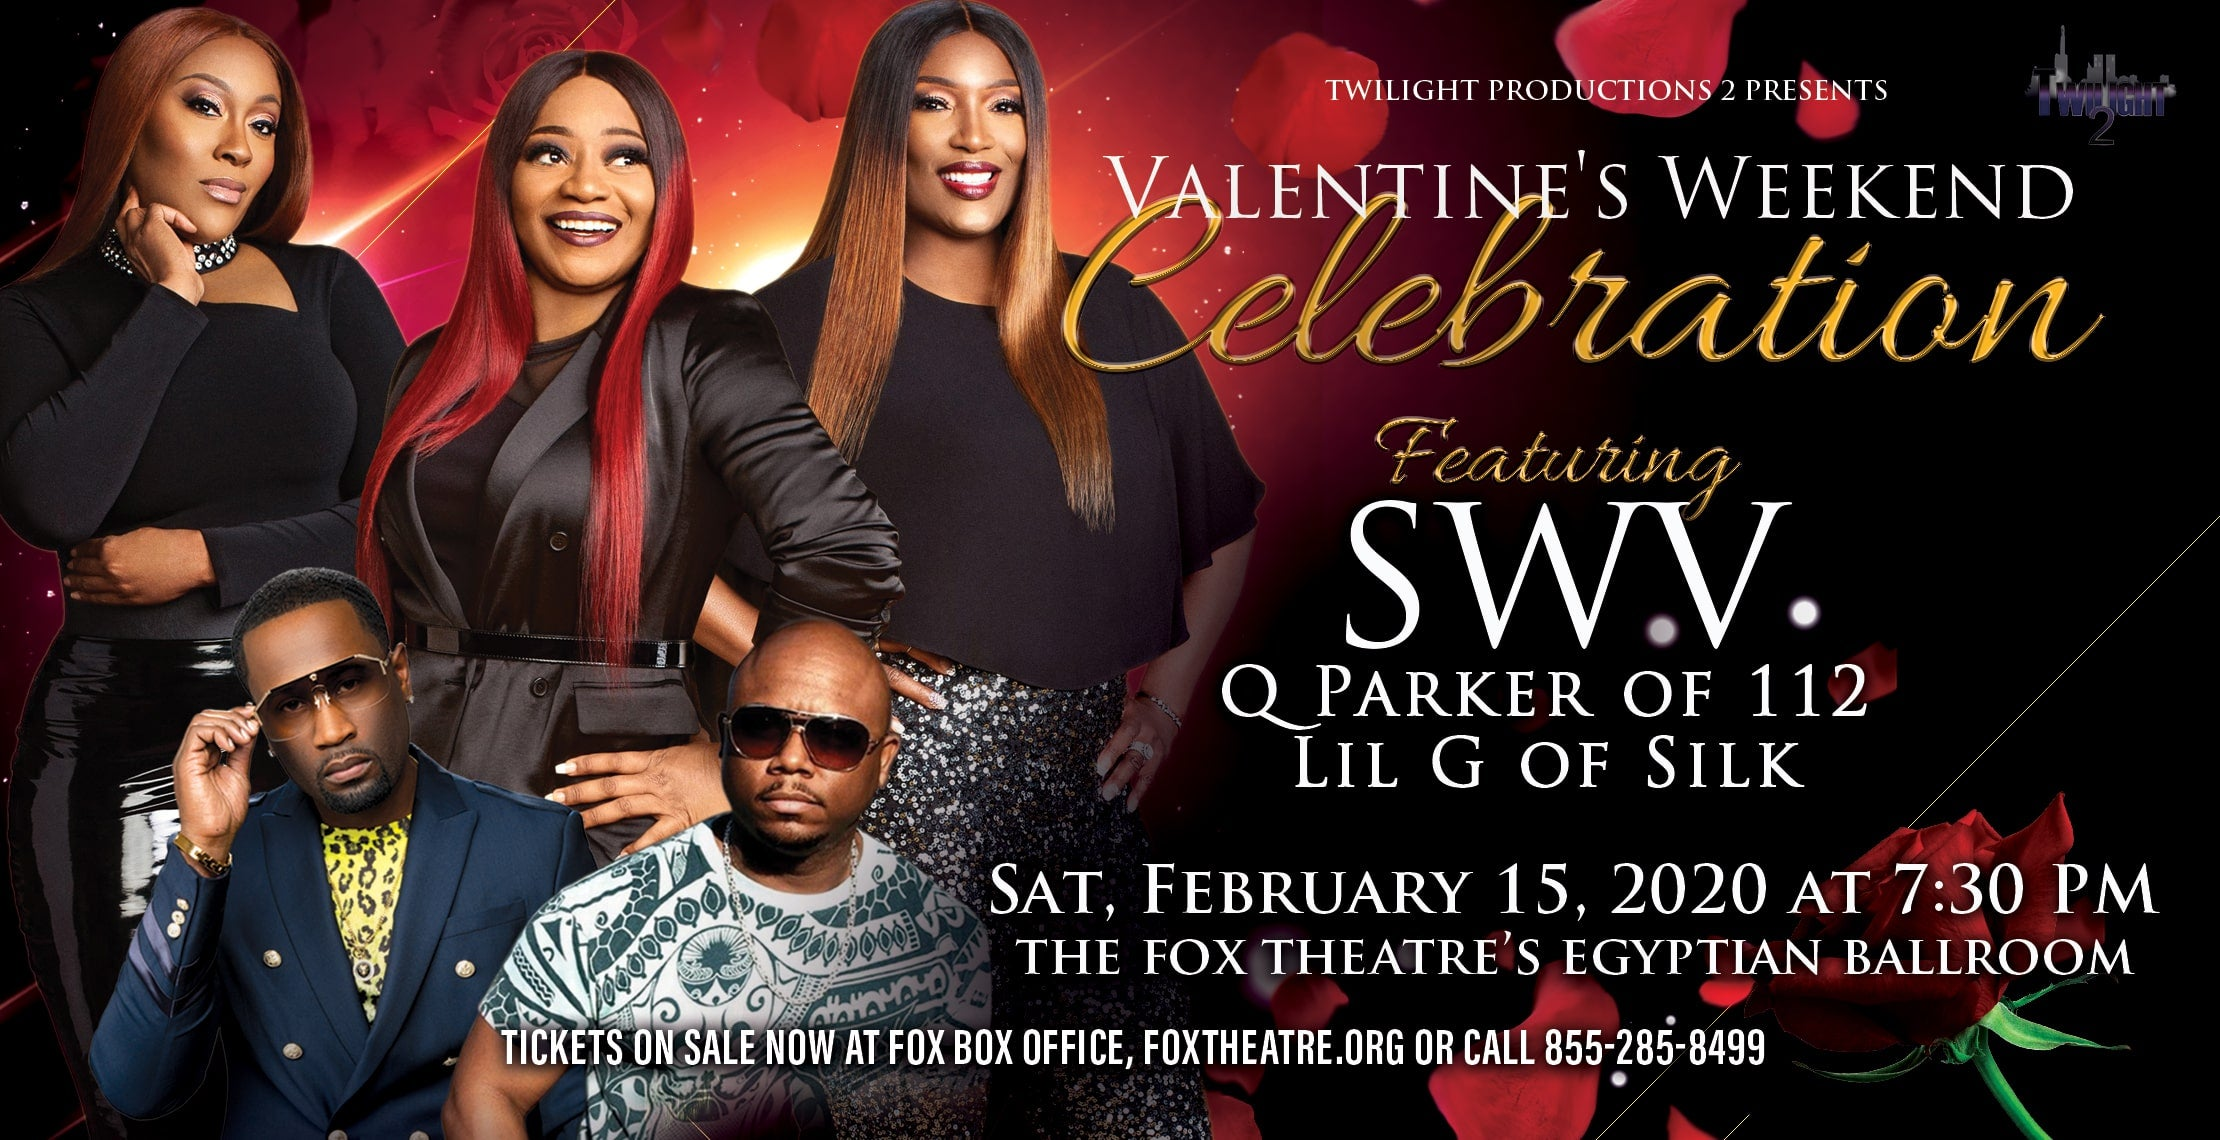 SWV's Valentine's Weekend Celebration